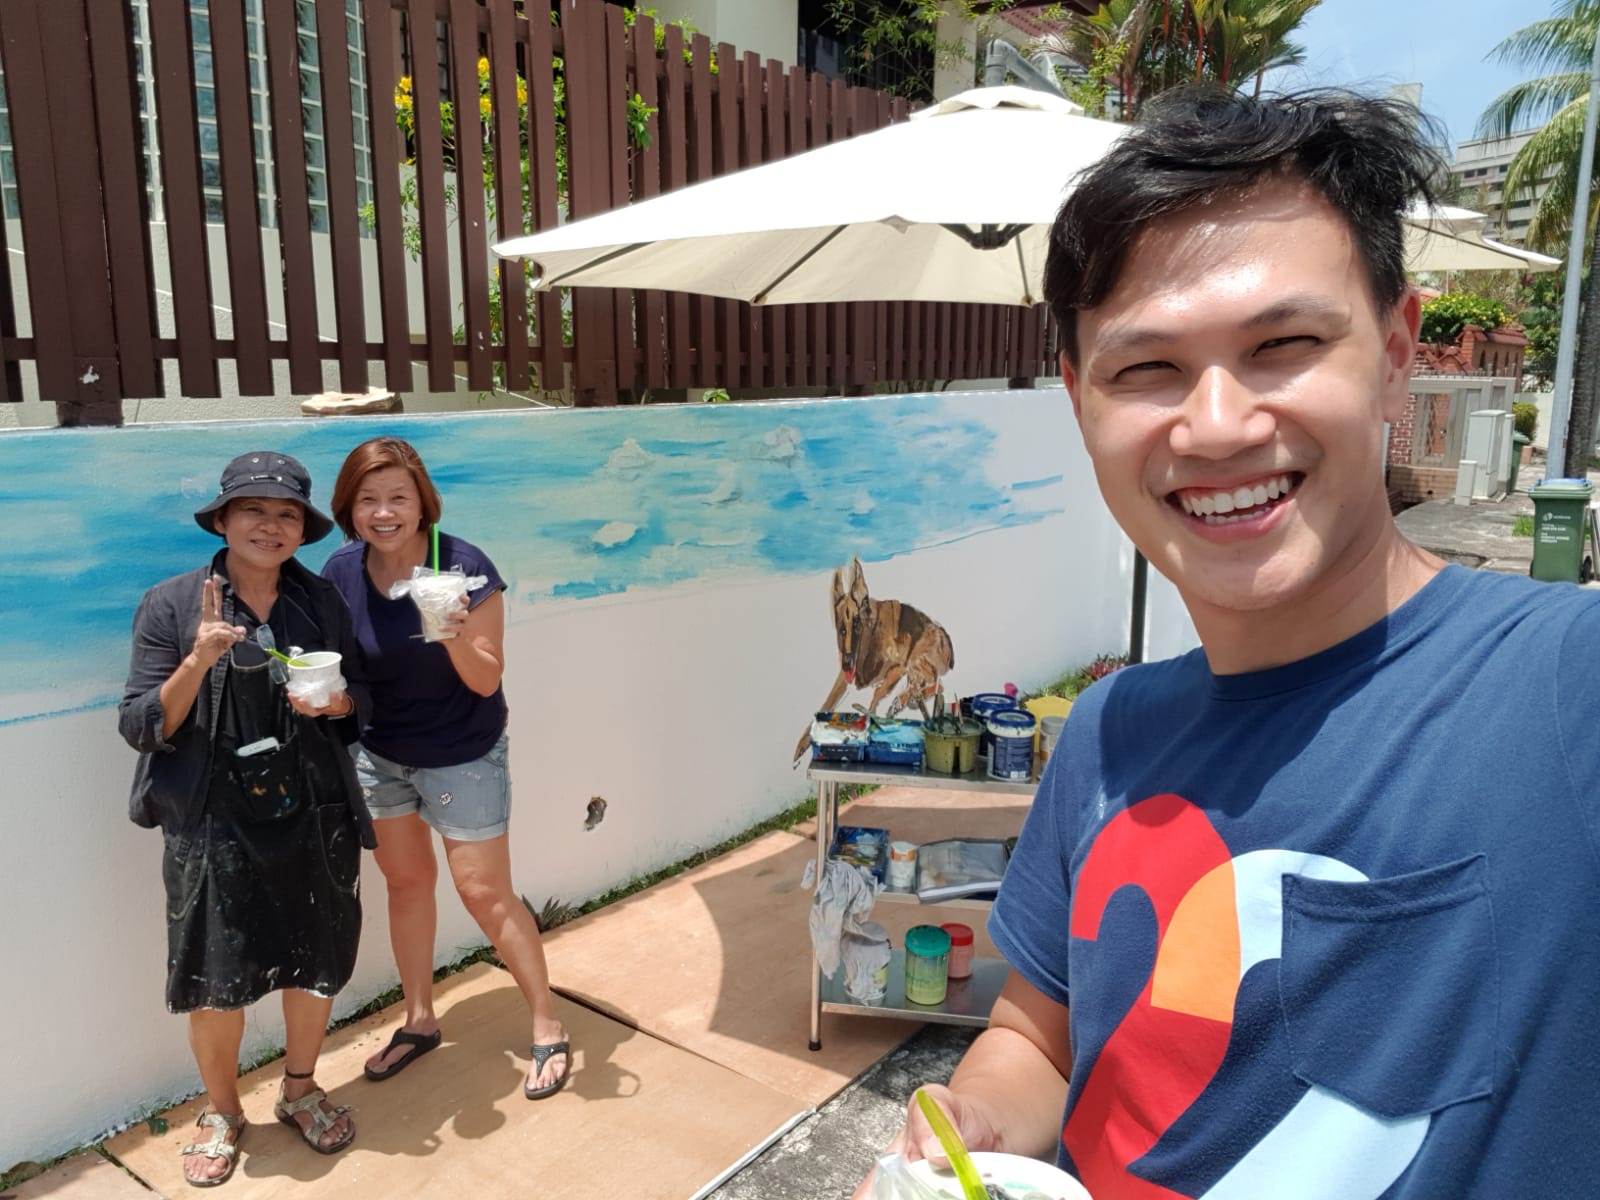 Miracle No. 2 - Samaritan Karen whose bubbly and happy-go-lucky personality makes us smile on a hot day! She brought drinks and cooking snacks for us on Day 2. The handsome guy who took the wife is none other than Brandon who is the overlooking the operations of the therapy centre.